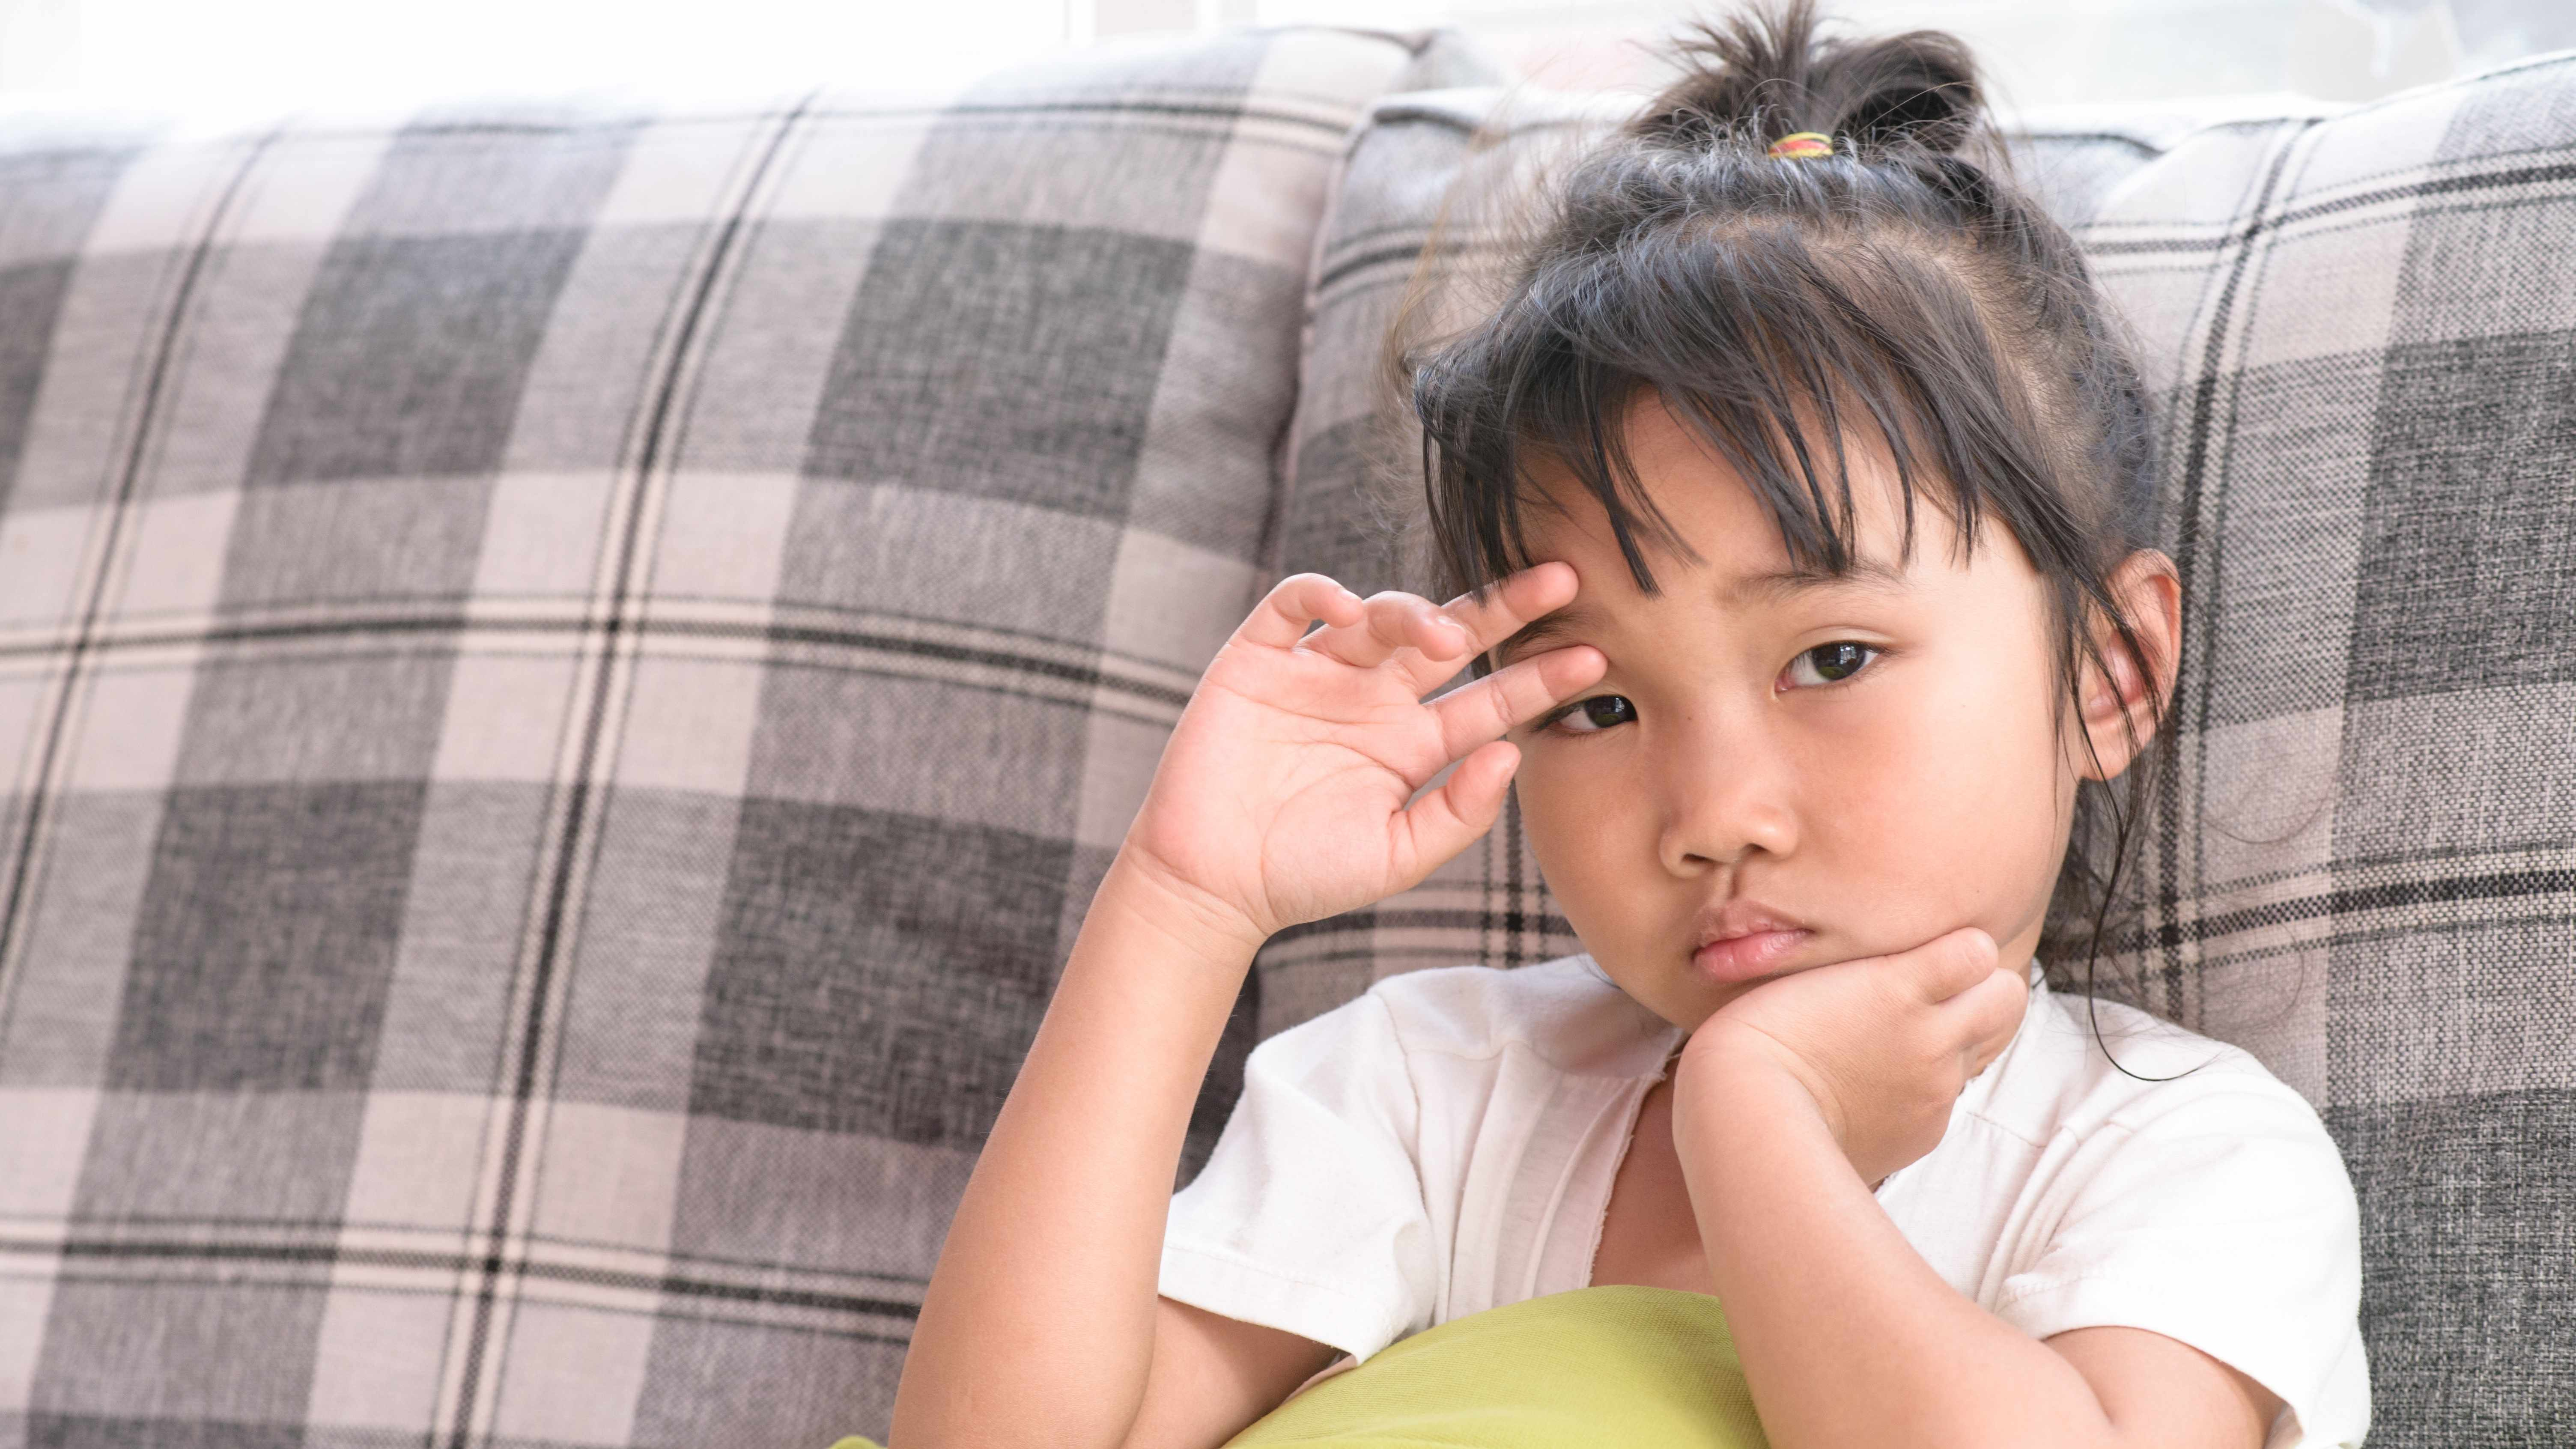 a young girl sitting on a couch, looking sad, worried or sick